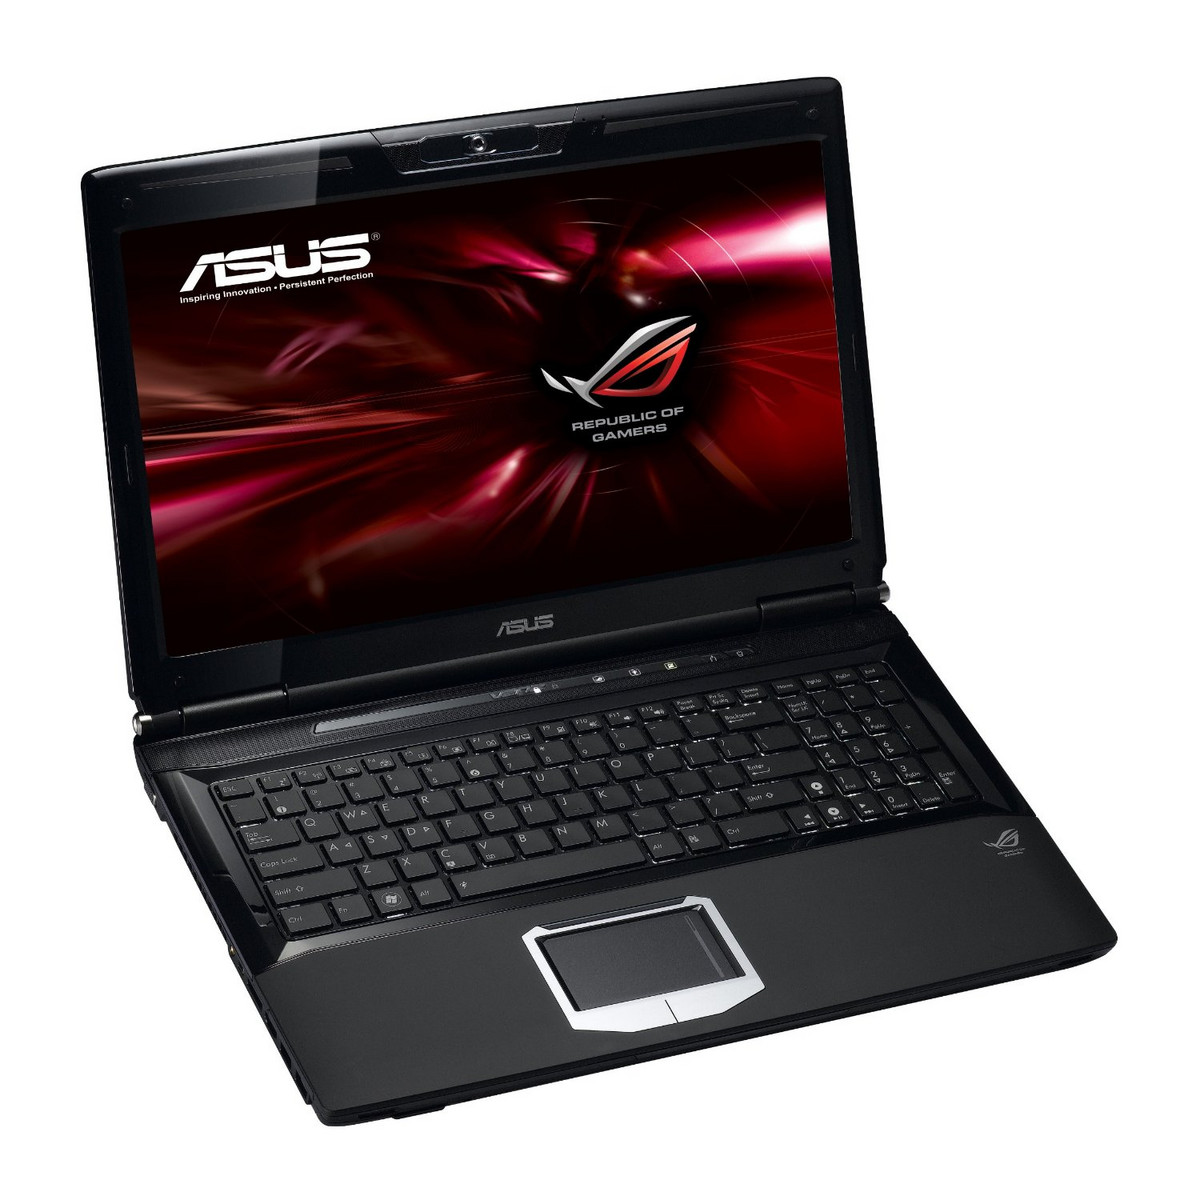 ASUS G51J NOTEBOOK INTEL INF DRIVER WINDOWS